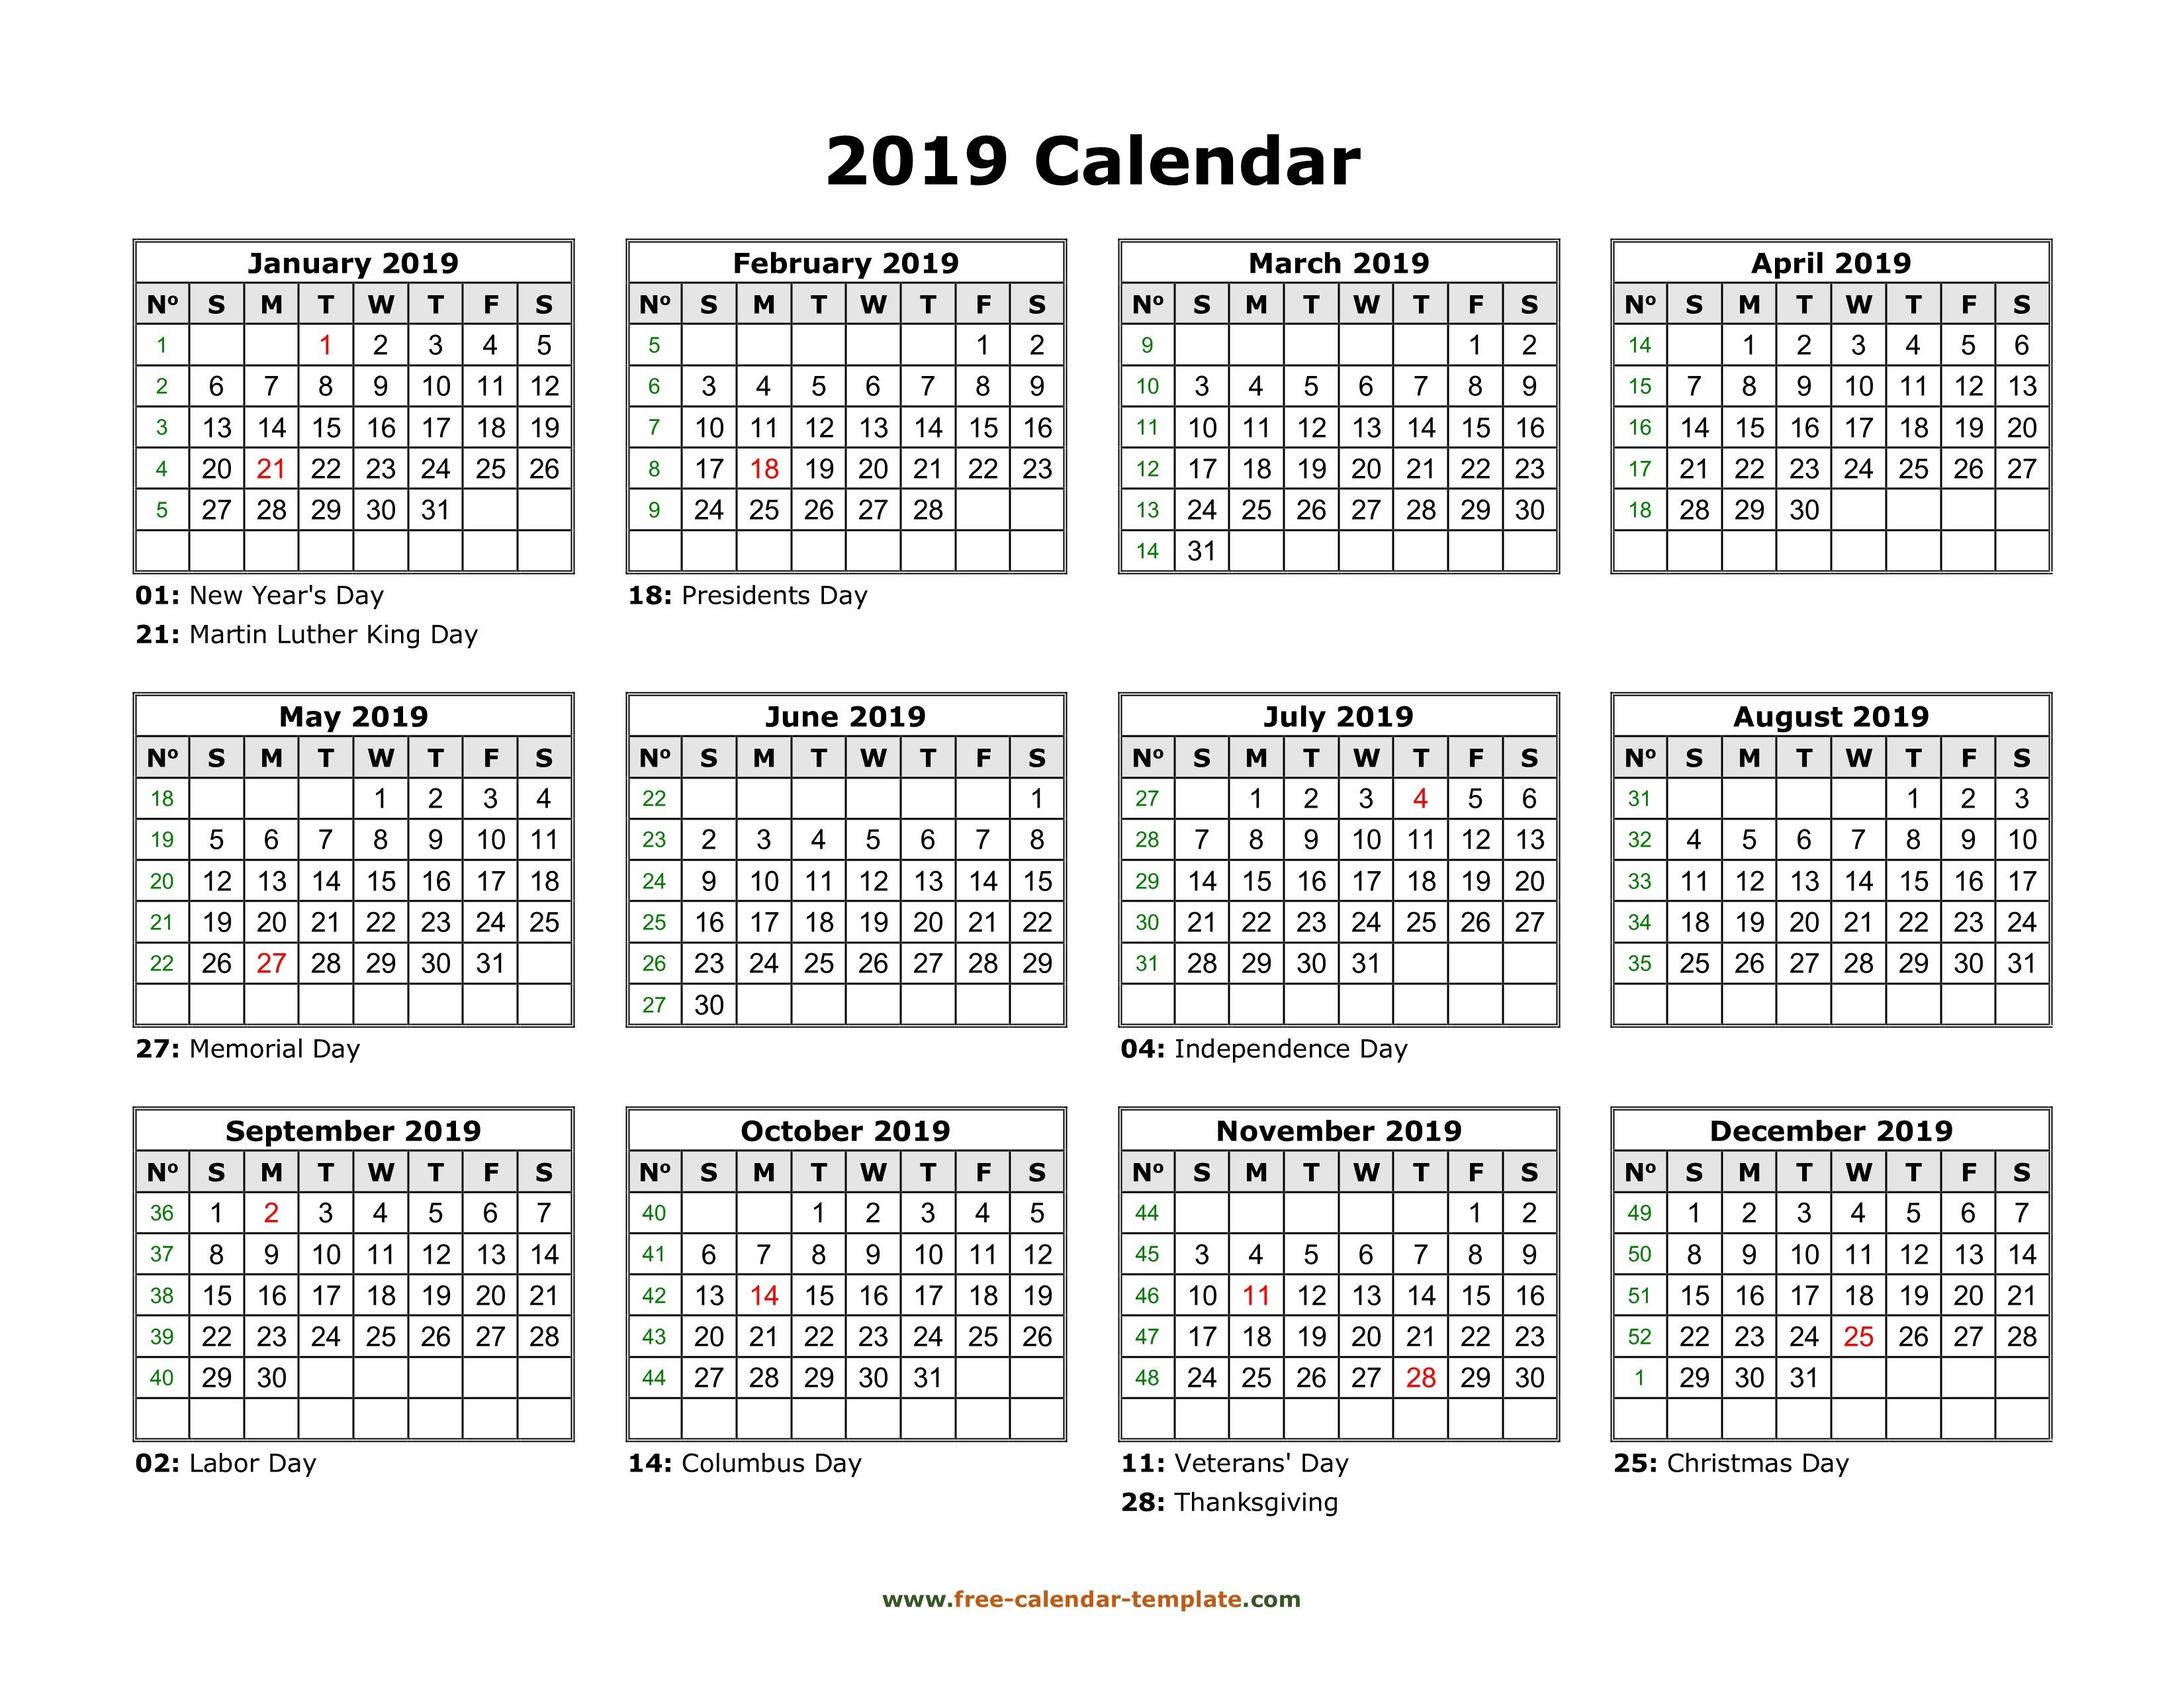 Yearly Calendar 2019 Printable With Federal Holidays | Free Calendar Calendar 2019 View